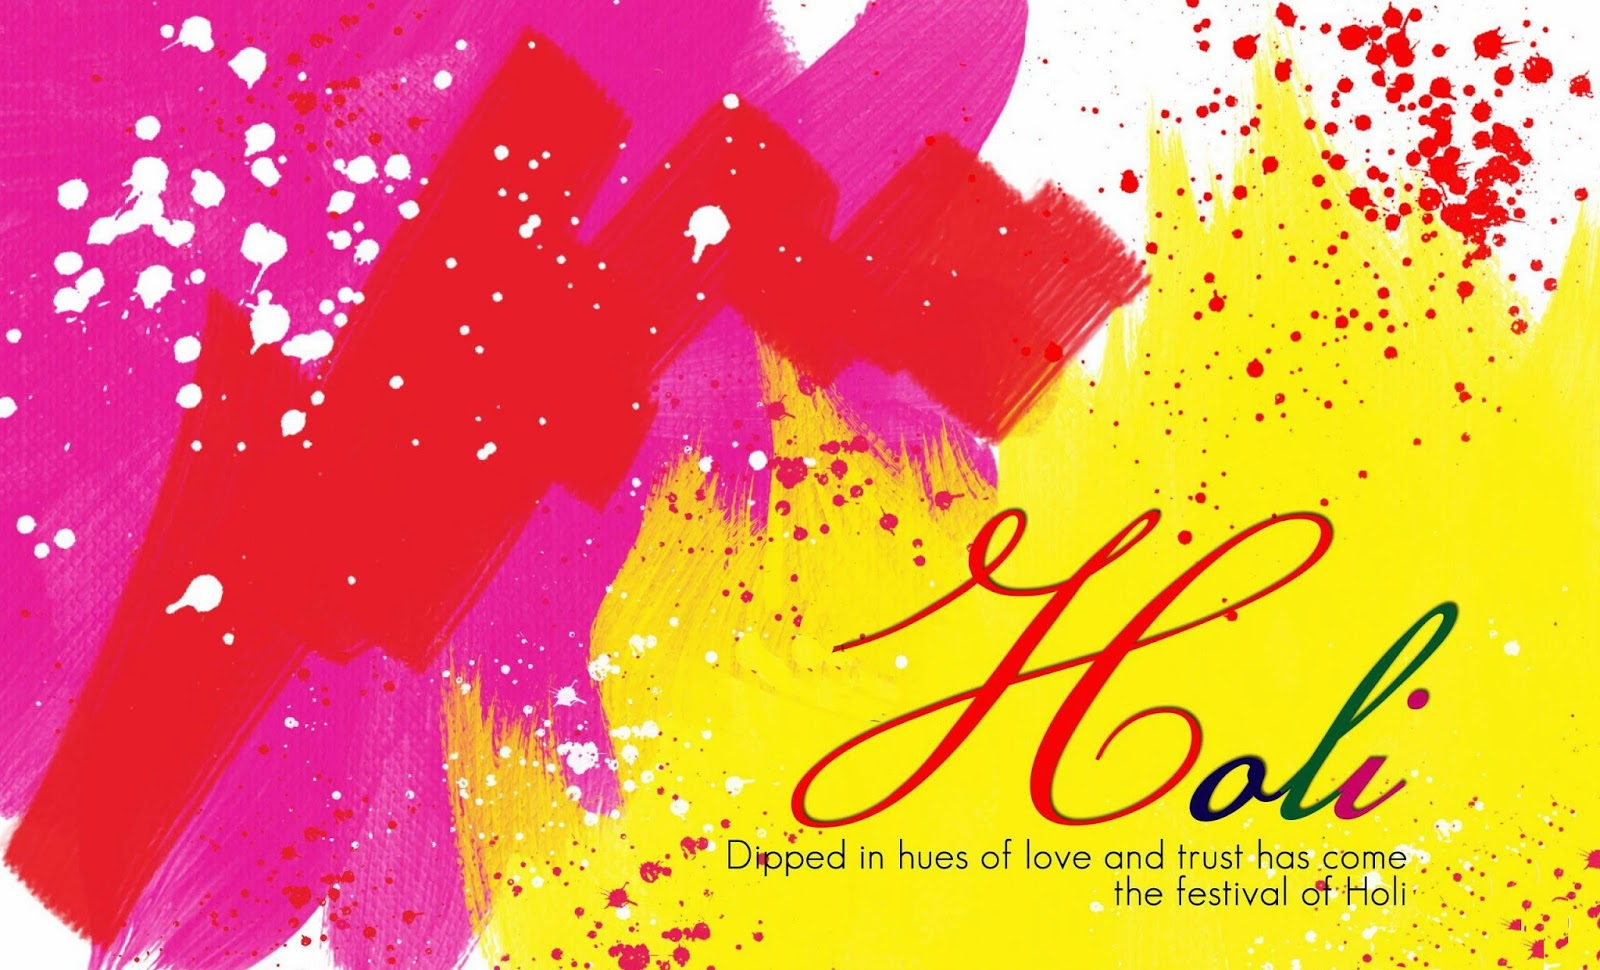 Happy holi wishes and messages for everyone messages and quotes happy holi to you and your family members m4hsunfo